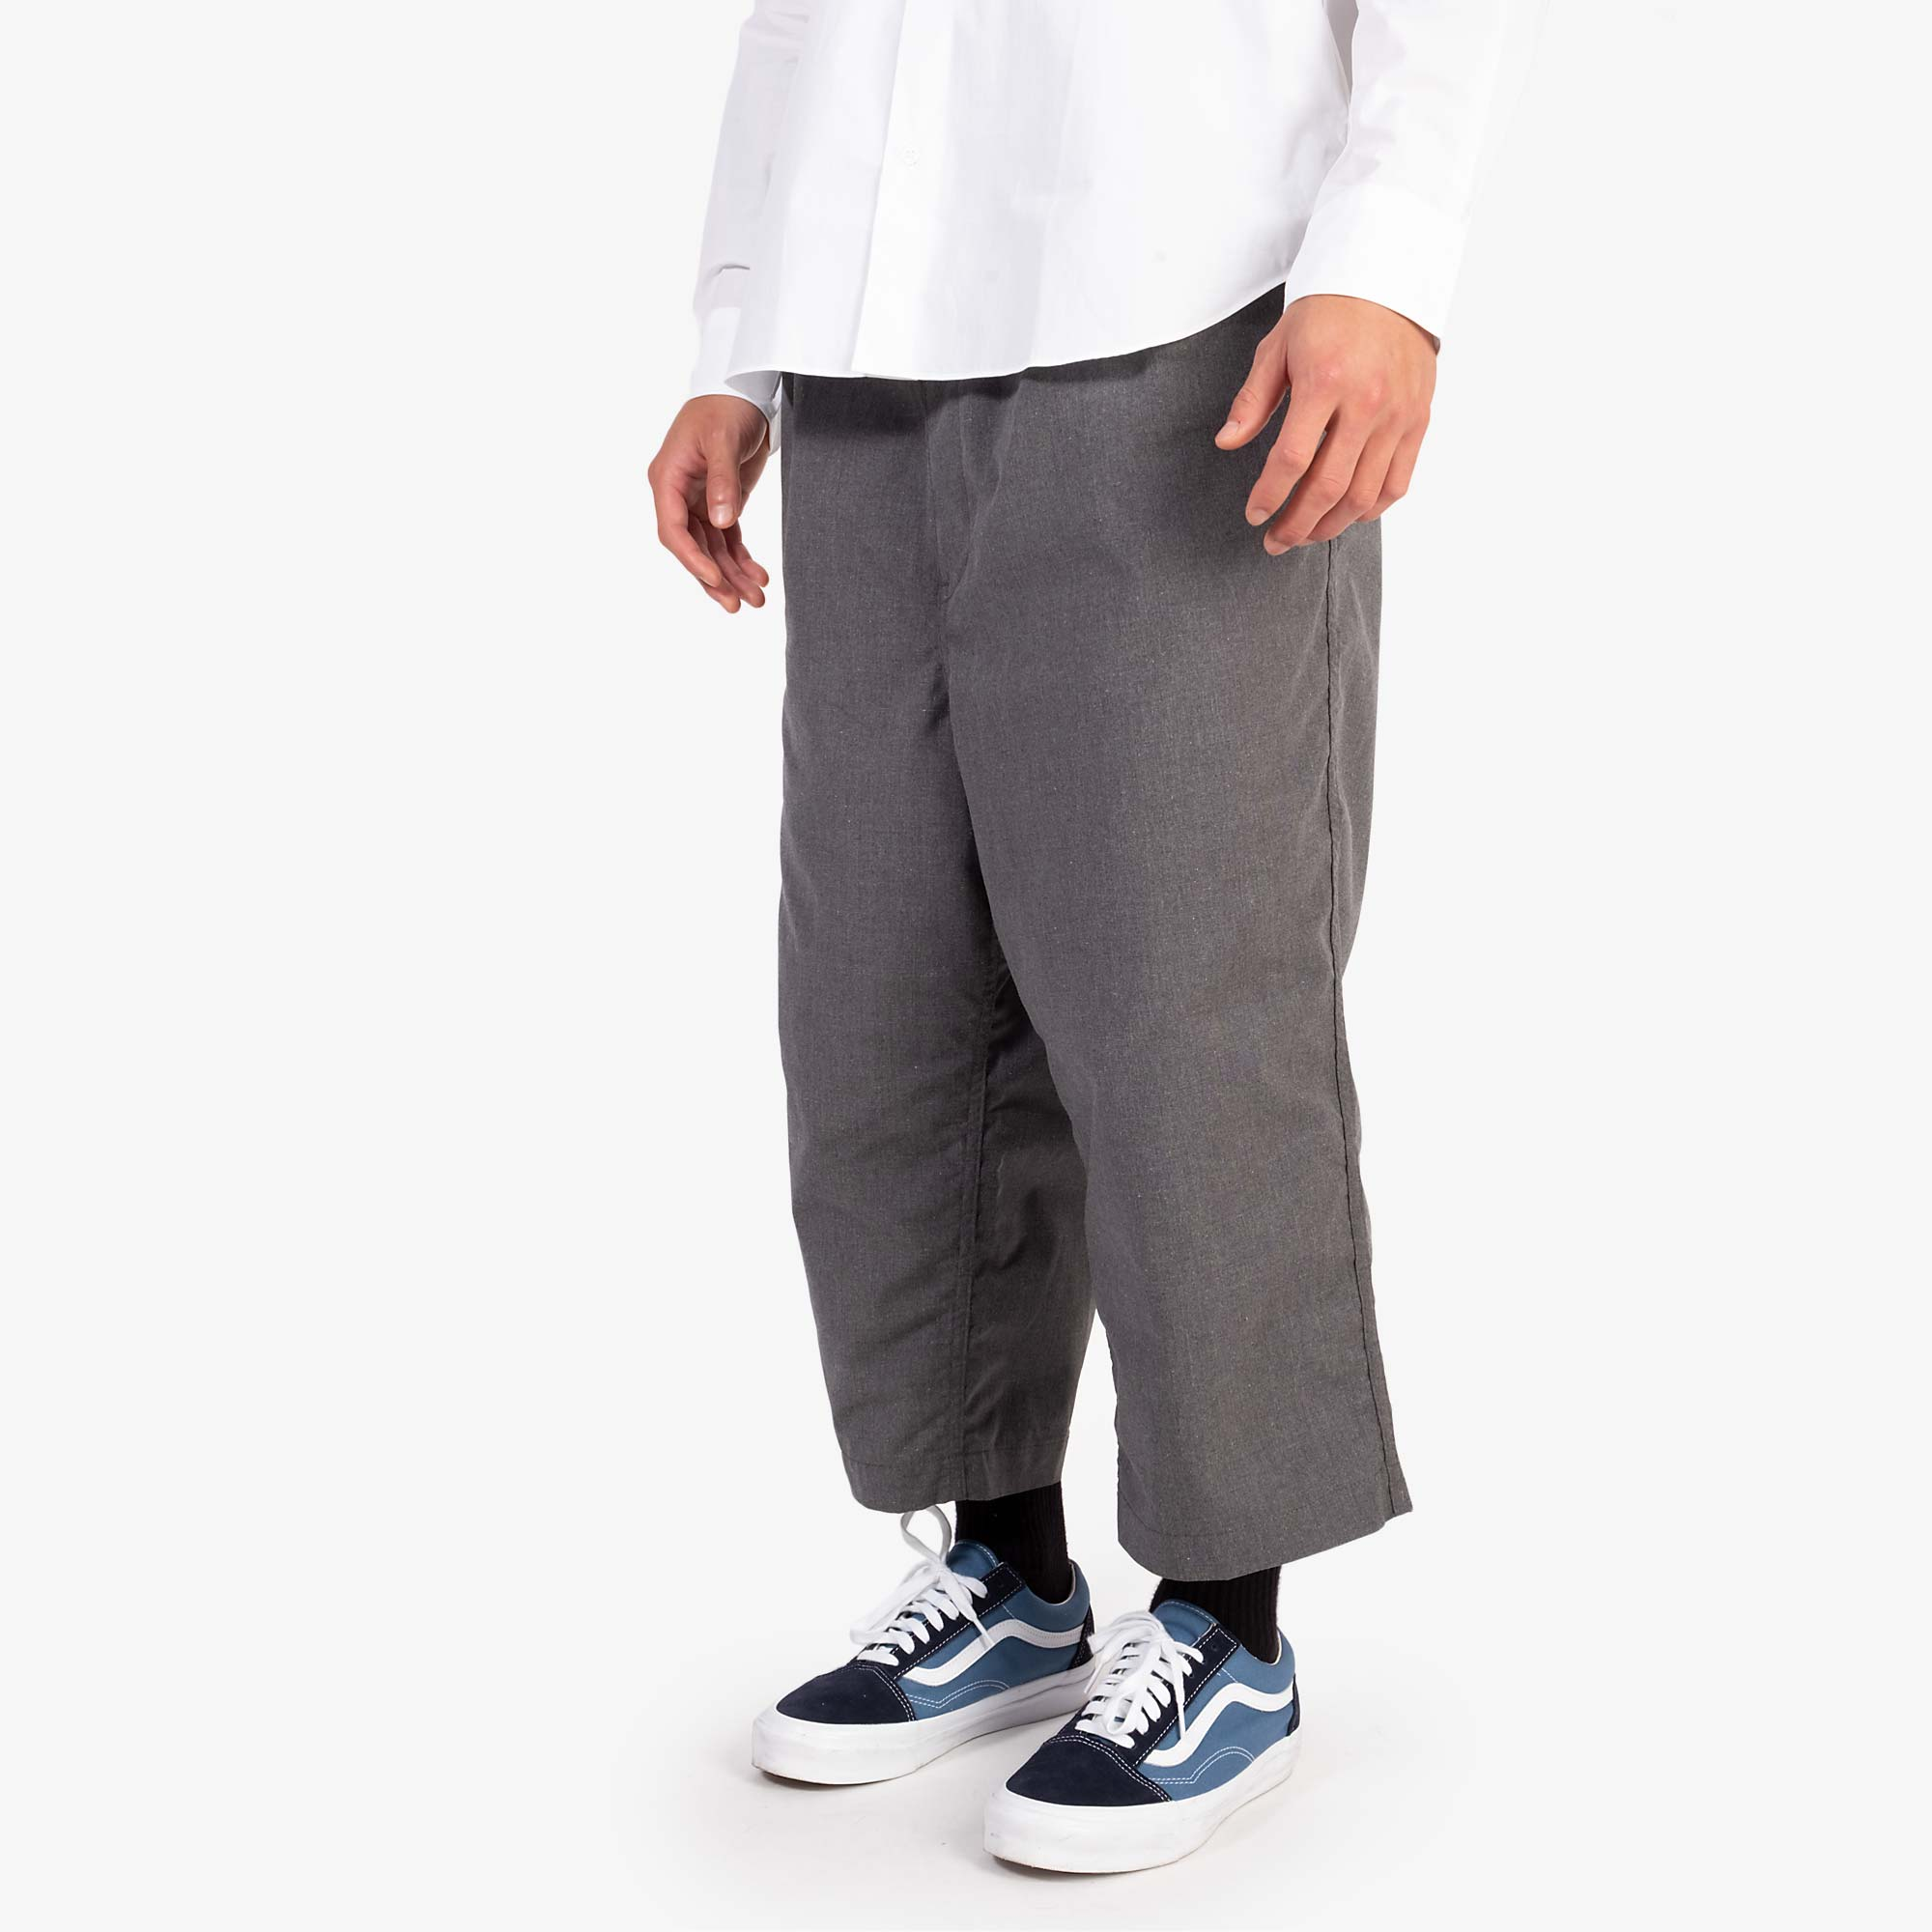 Comme des Garçons - Homme Two Tuck Wide Pleat Trousers - Grey 8